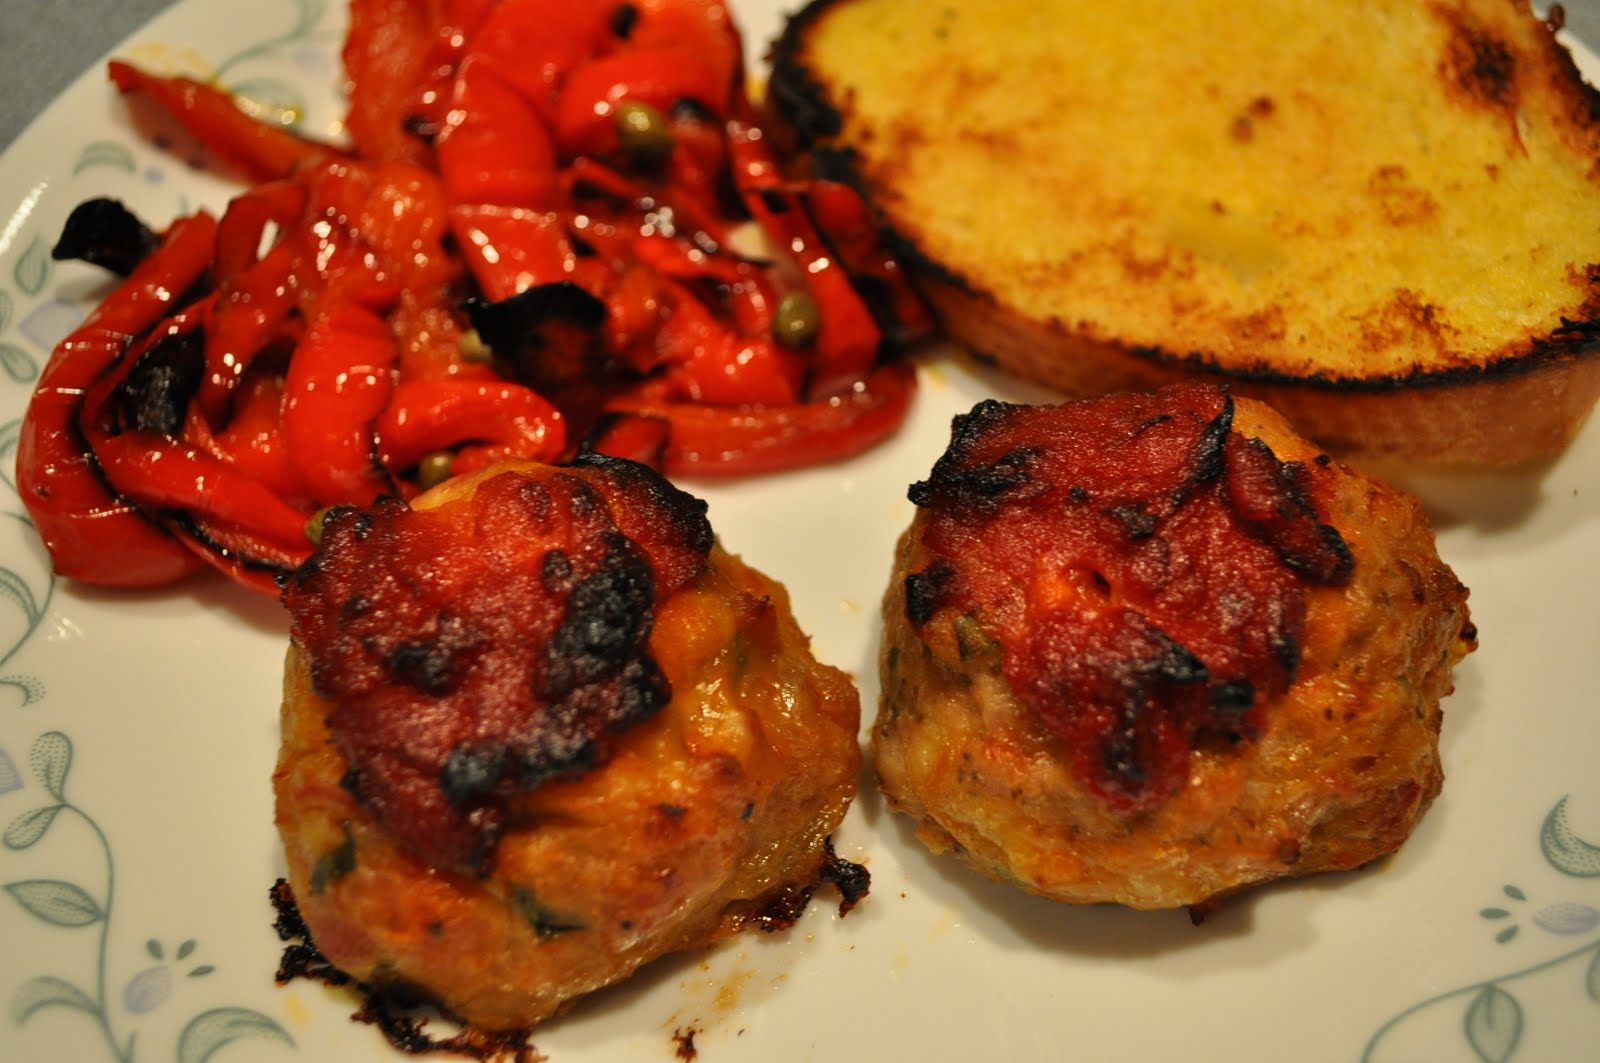 My Year of 25: Recipe #36 - Baked Chicken Meatballs with Peperonata